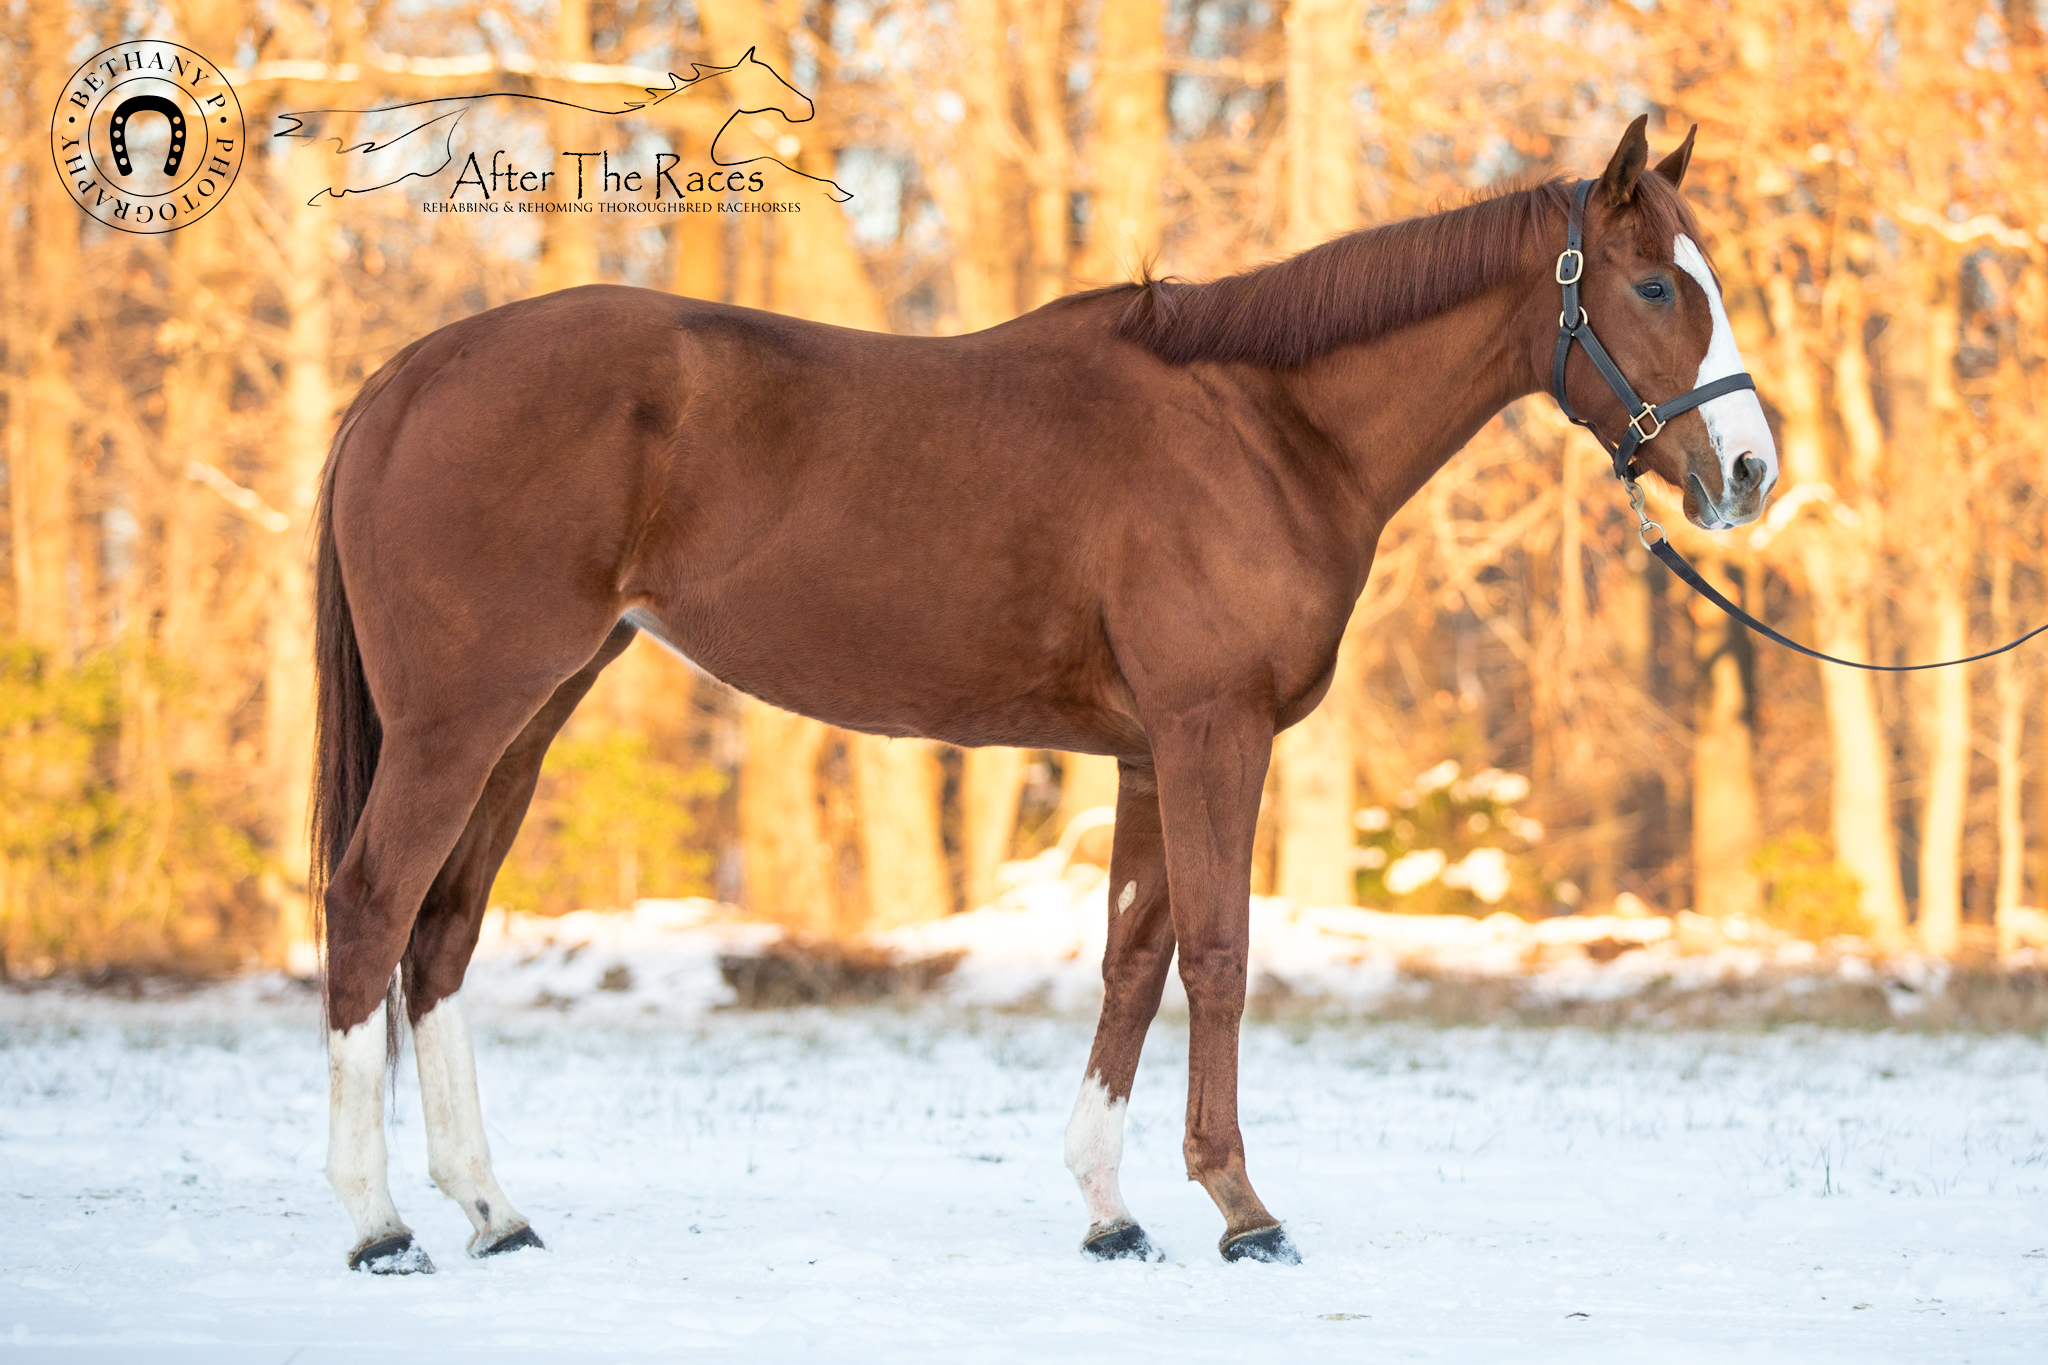 Choice Prospect retired racehorse ready for adoption through After The Races in Maryland